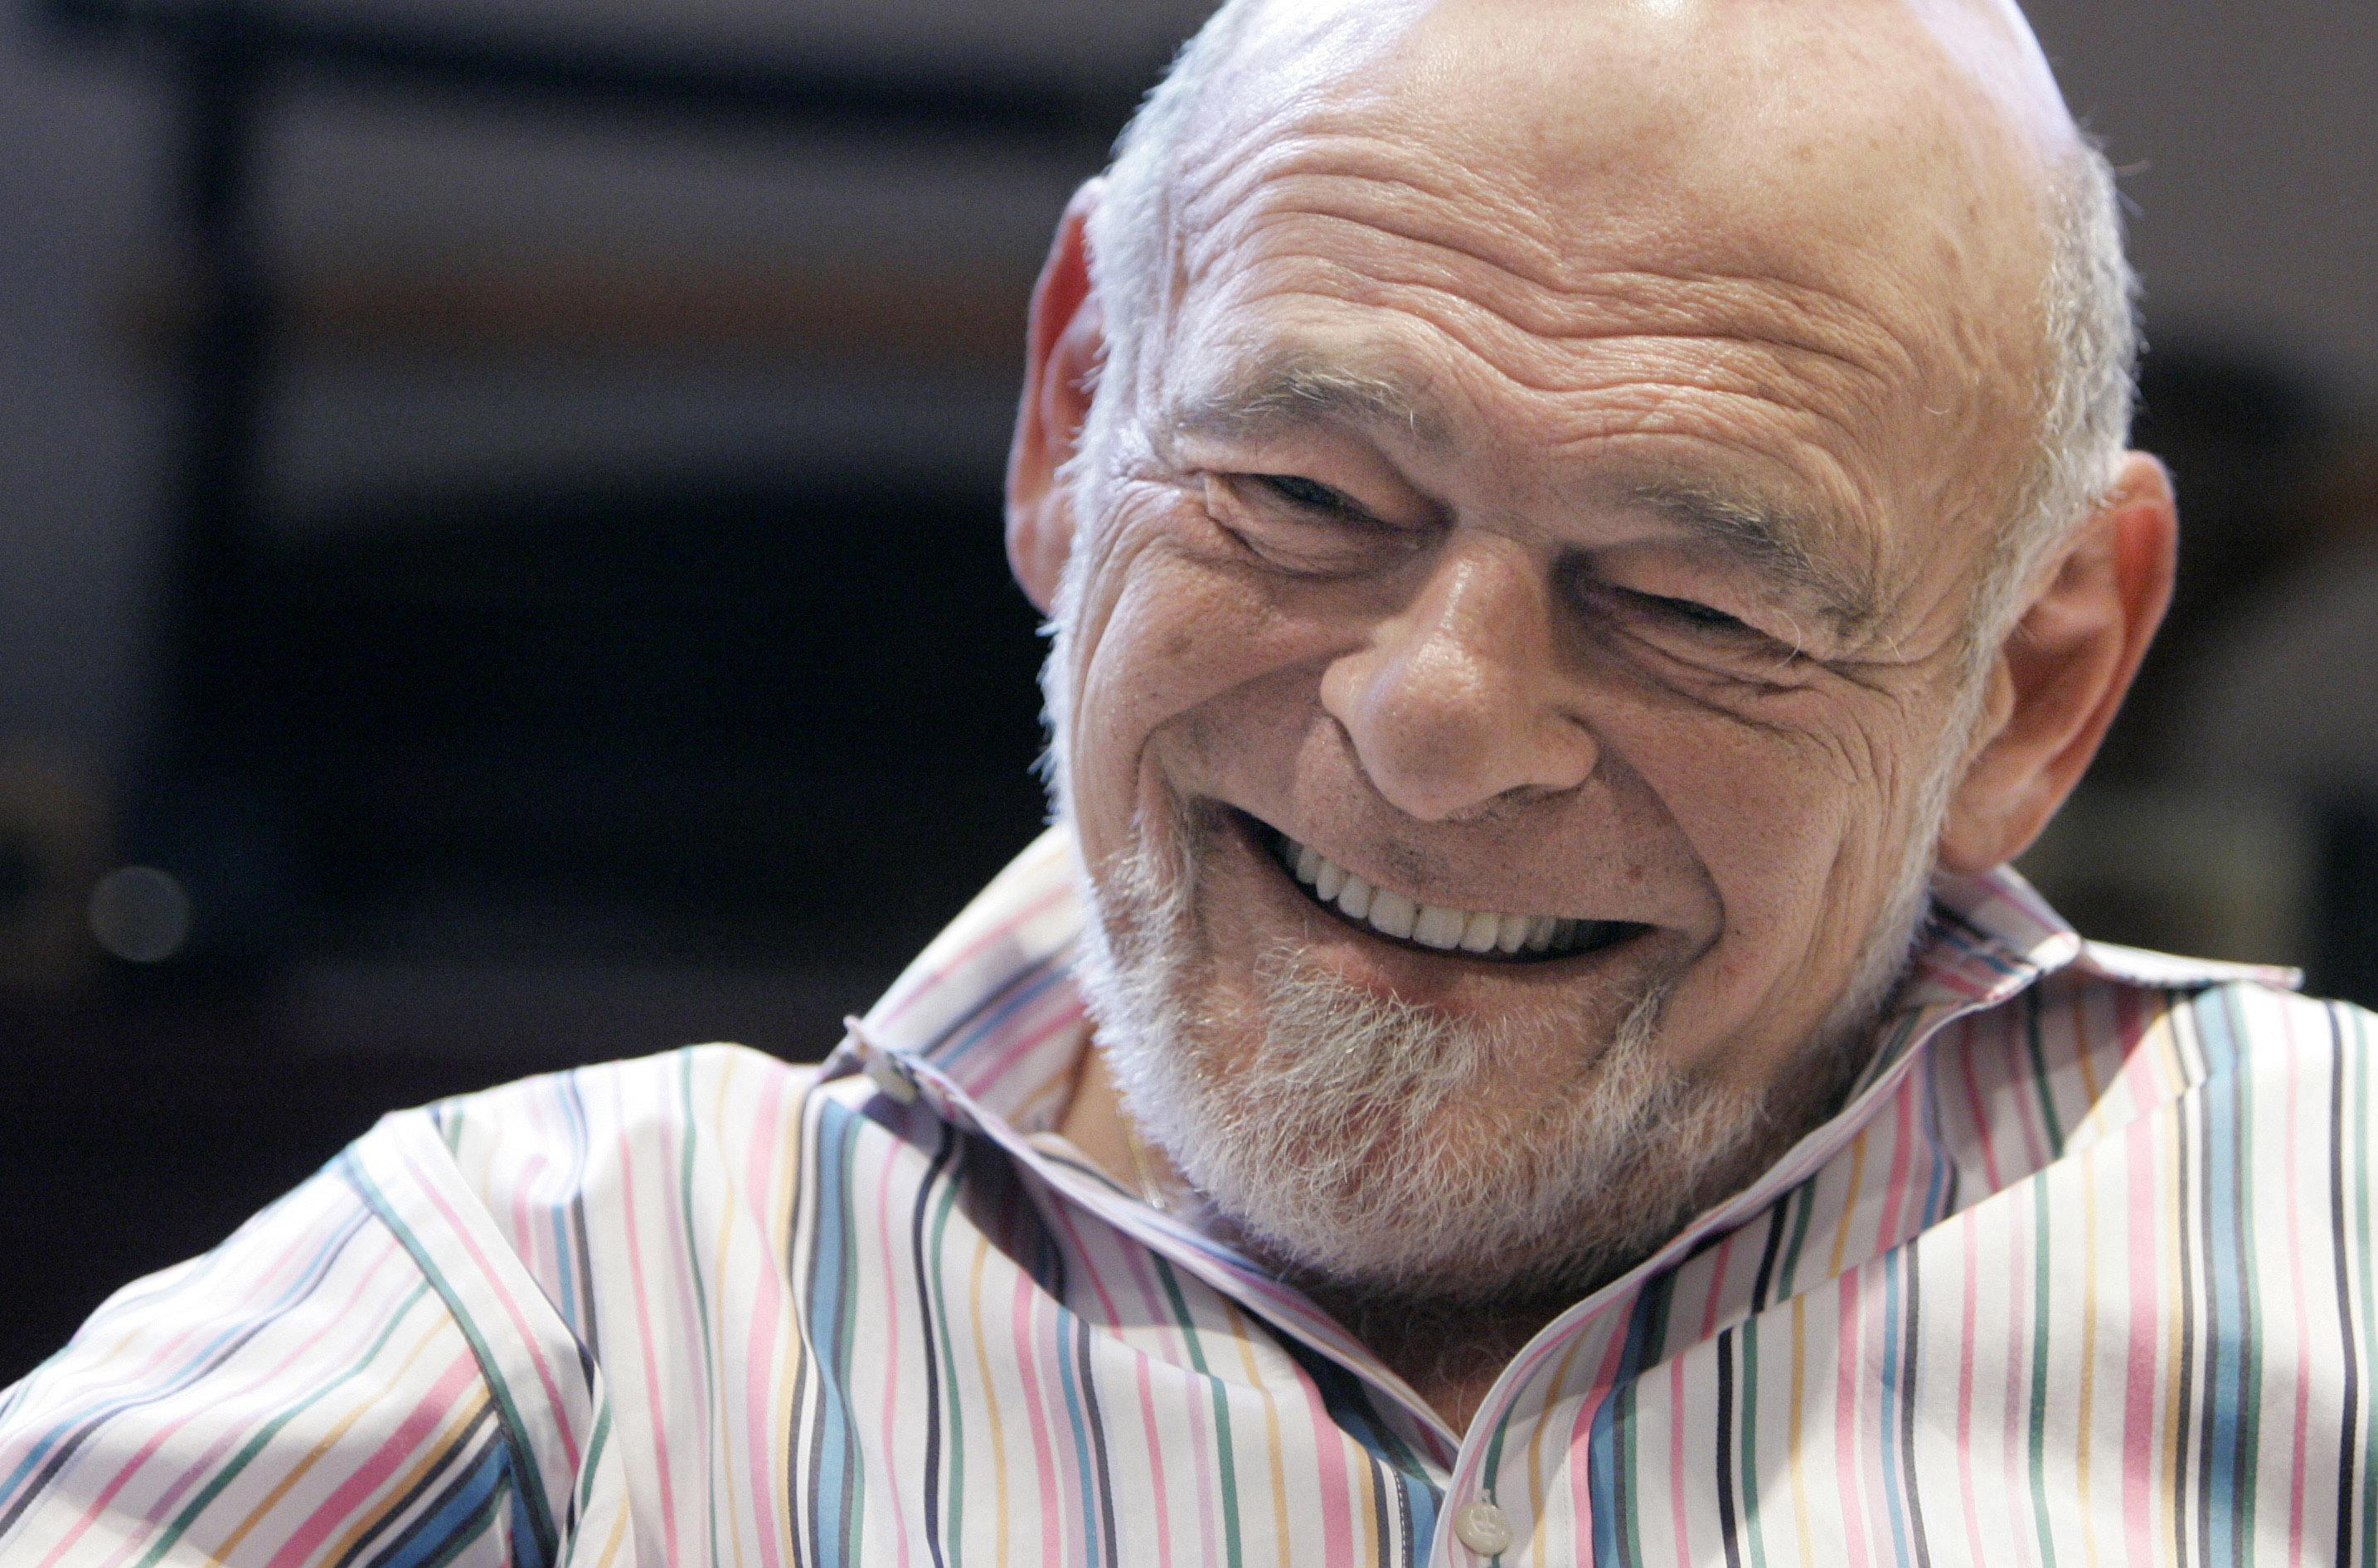 Sam Zell Gives $60 Million To U. Of Michigan To Support Student Entrepreneurism